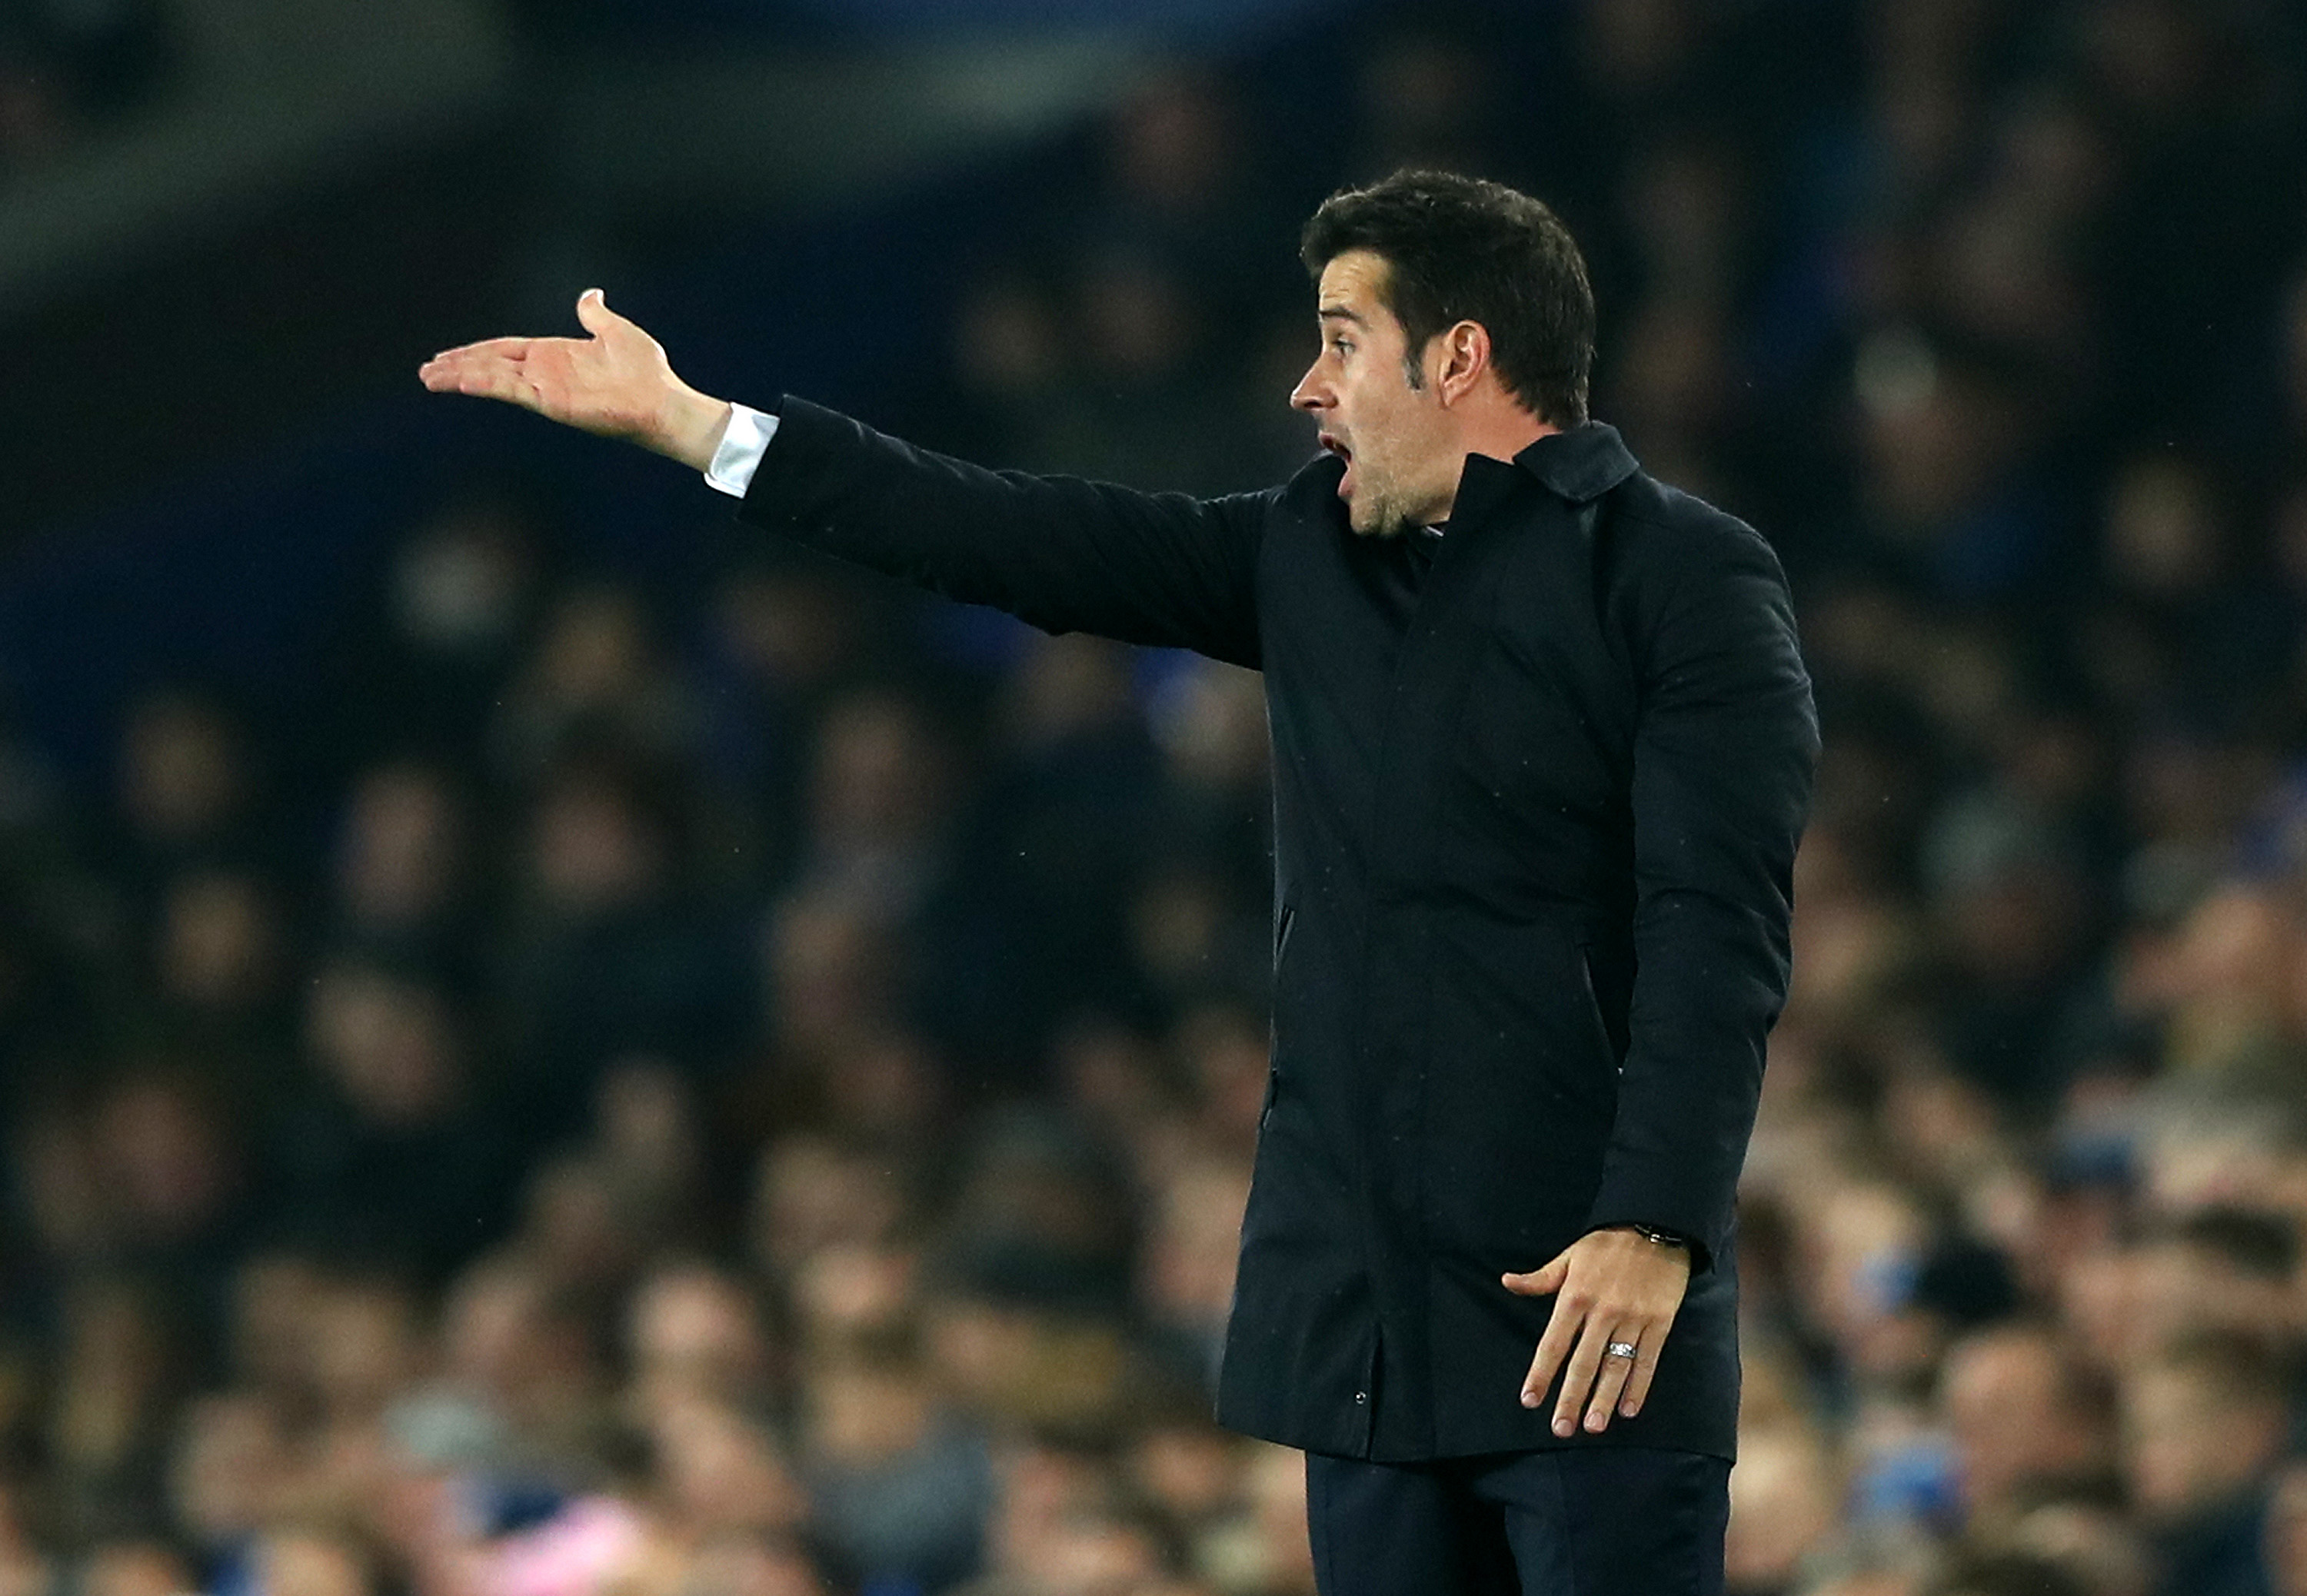 Marco Silva looked out of his depth towards the end of his Everton reign (Photo by Matthew Lewis/Getty Images)